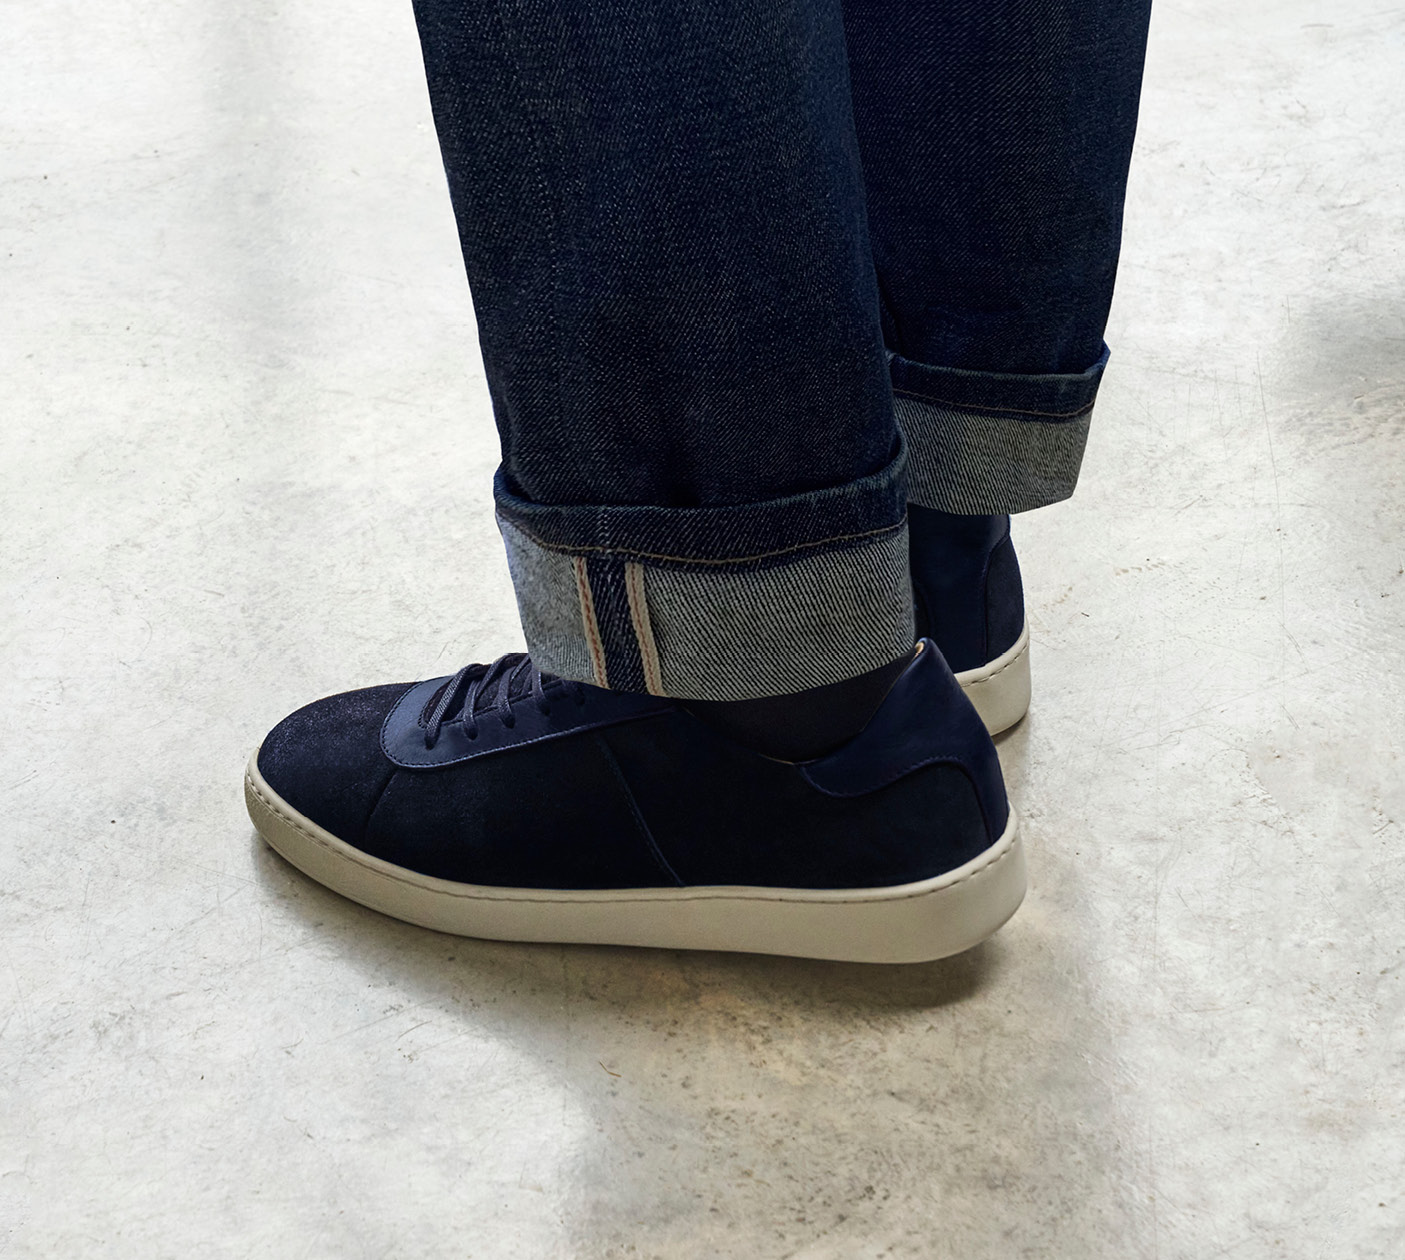 Sneakers for Men - Premium Blue Sneakers in Waxed Suede